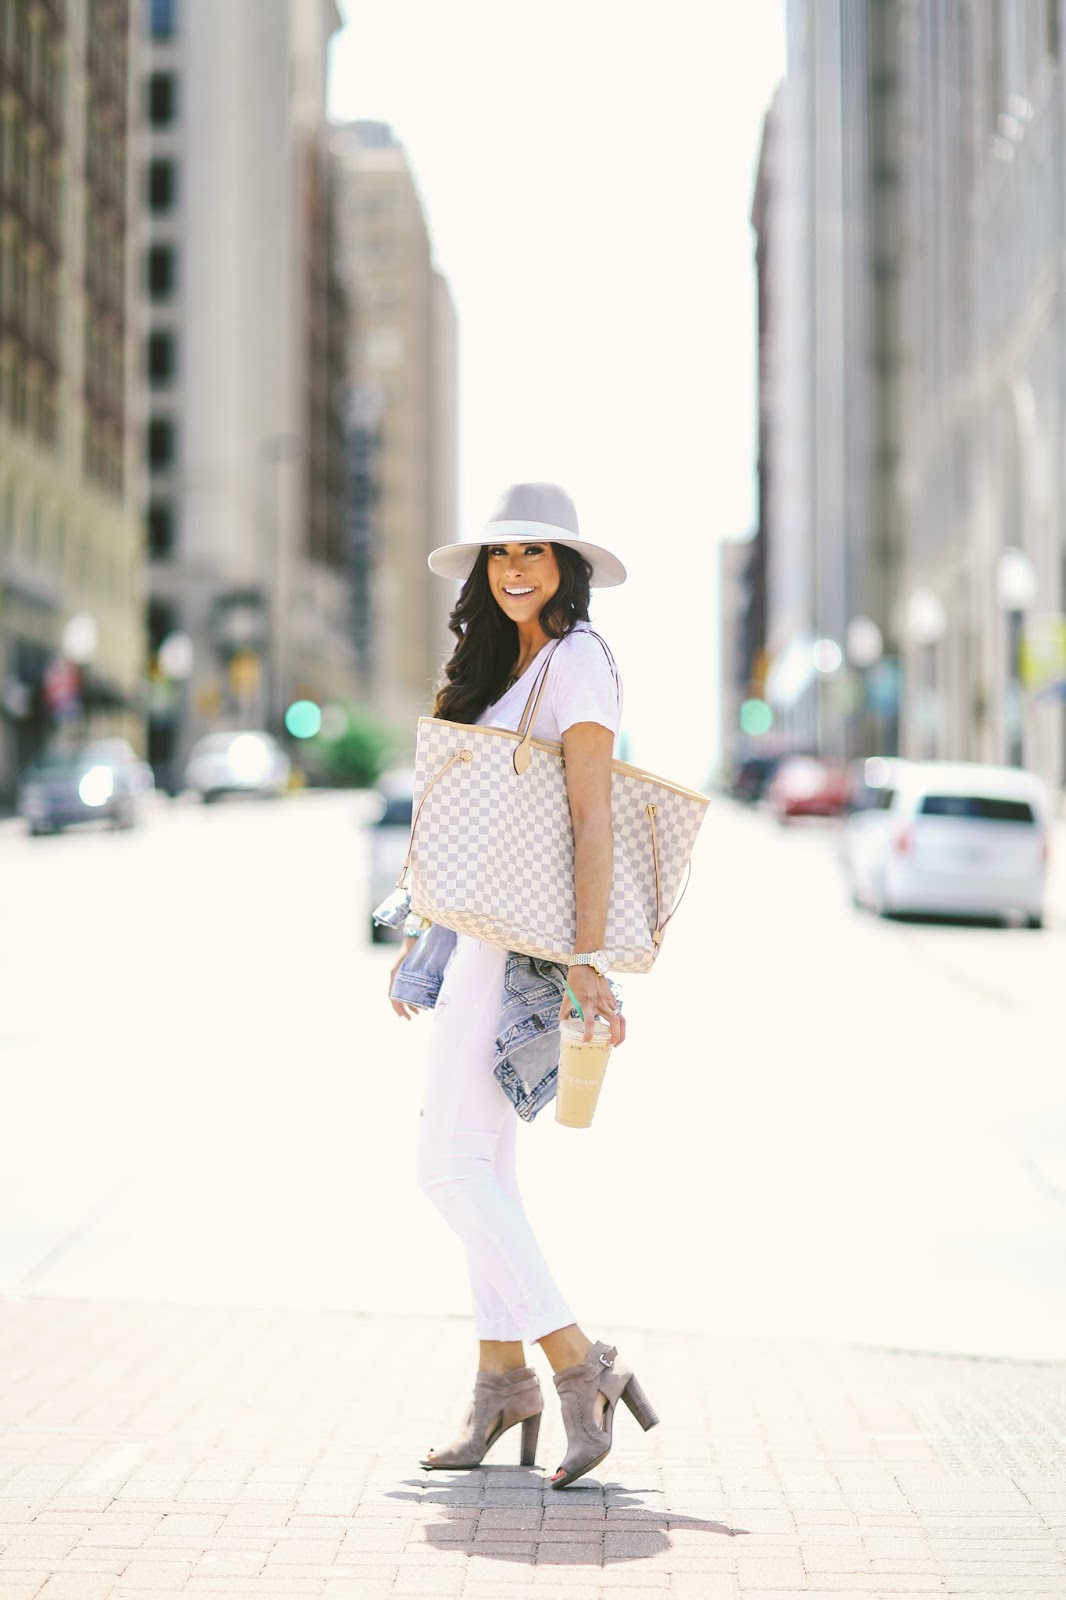 choloe bags - Easy To Re-Create Outfit | The Sweetest Thing | Bloglovin'